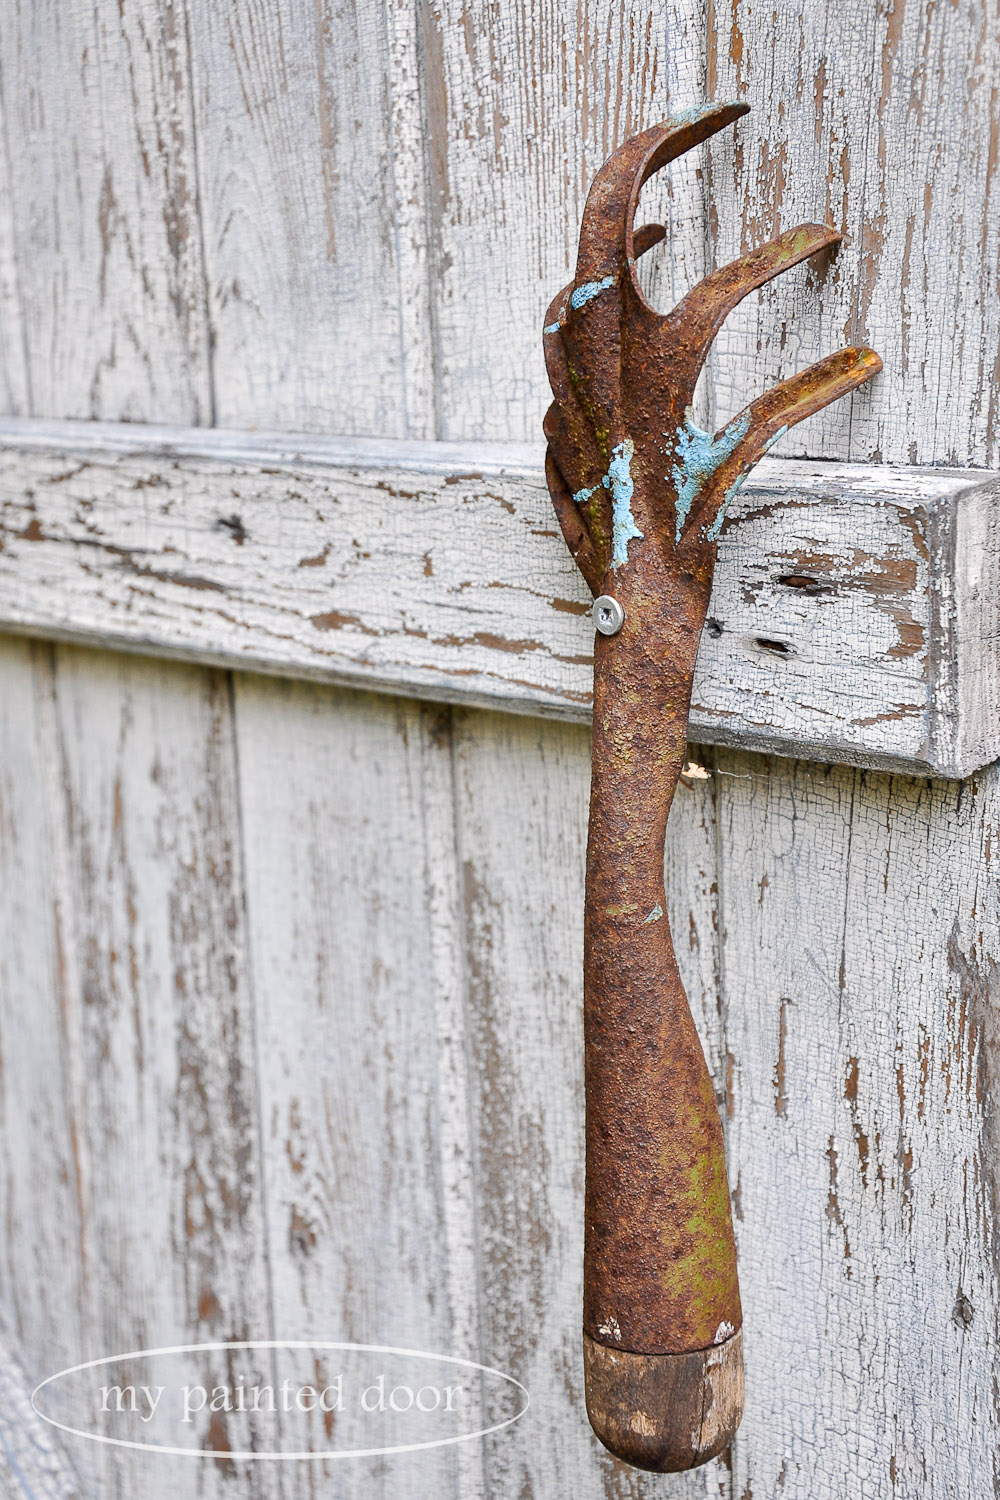 Repurposed doors for your garden - vintage garden tool used as a door handle